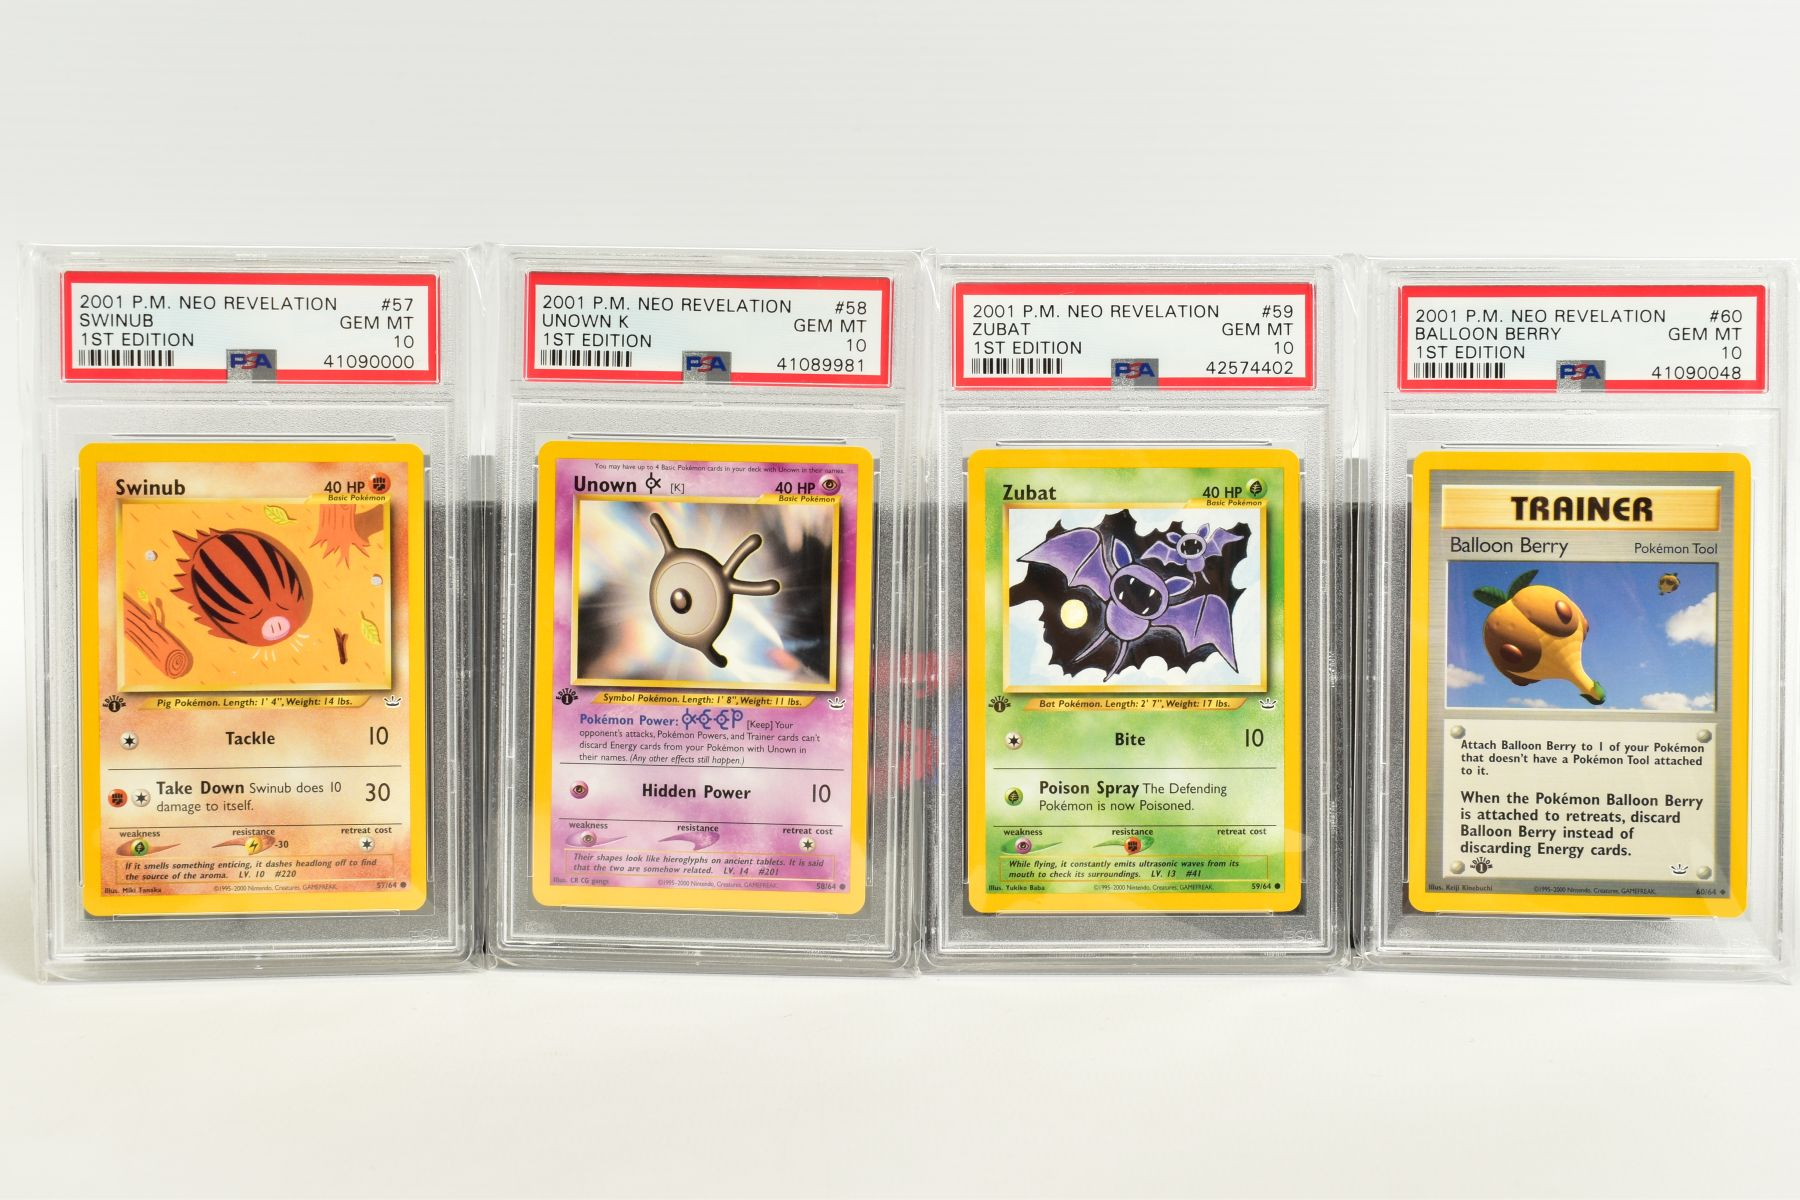 A QUANTITY OF PSA GRADED POKEMON 1ST EDITION NEO REVELATION SET CARDS, all are graded GEM MINT 10 - Image 13 of 14